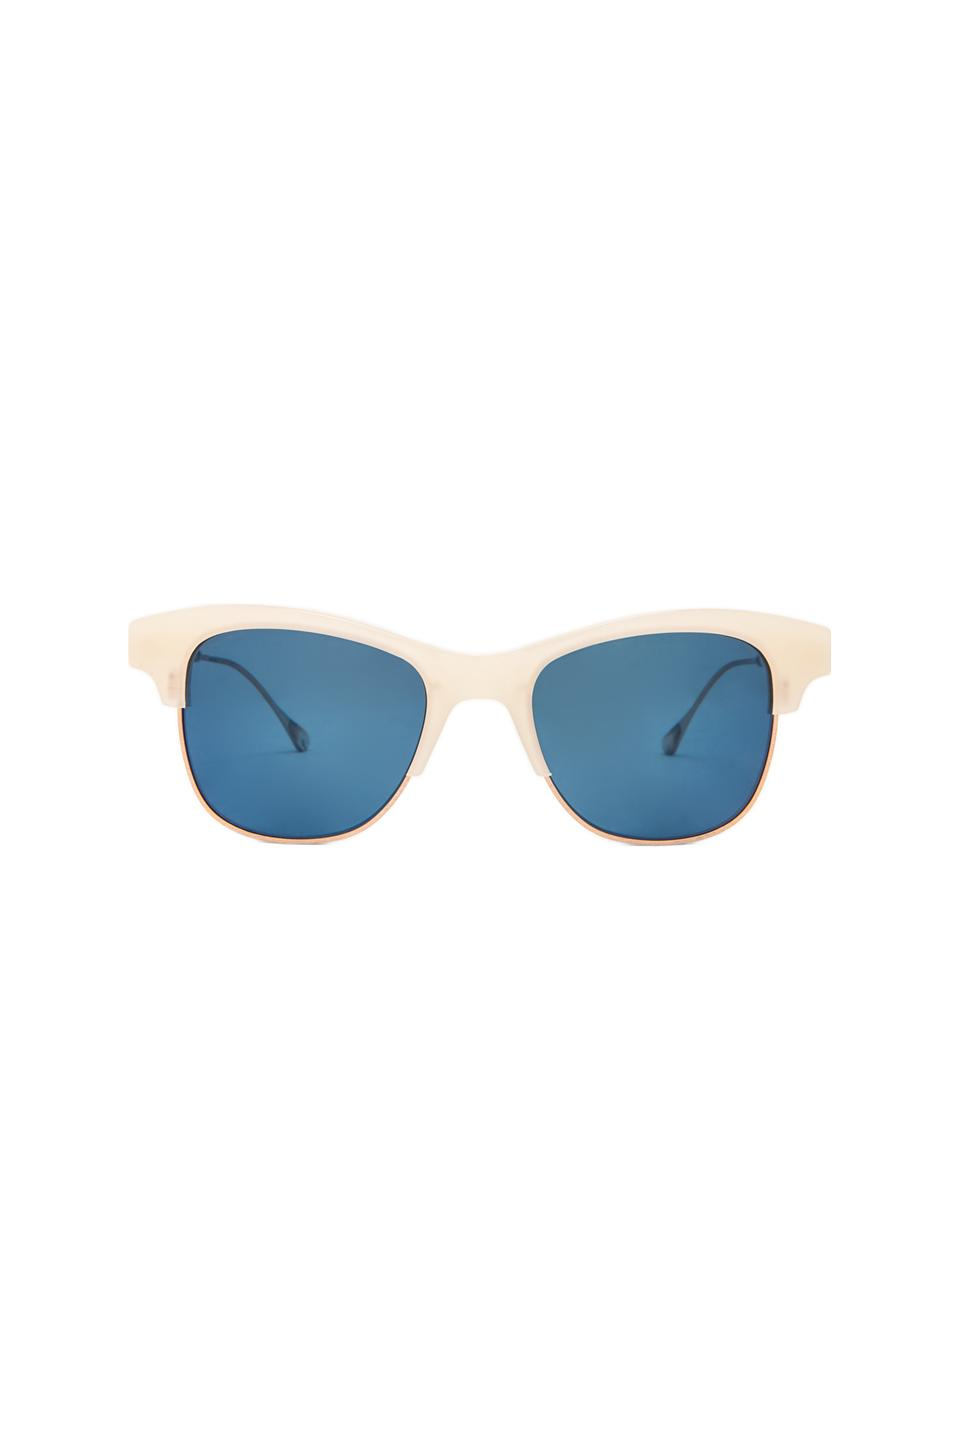 Oliver Peoples WEST Hobson Polarized Sunglasses in Pearl White/Brushed Soft Gold